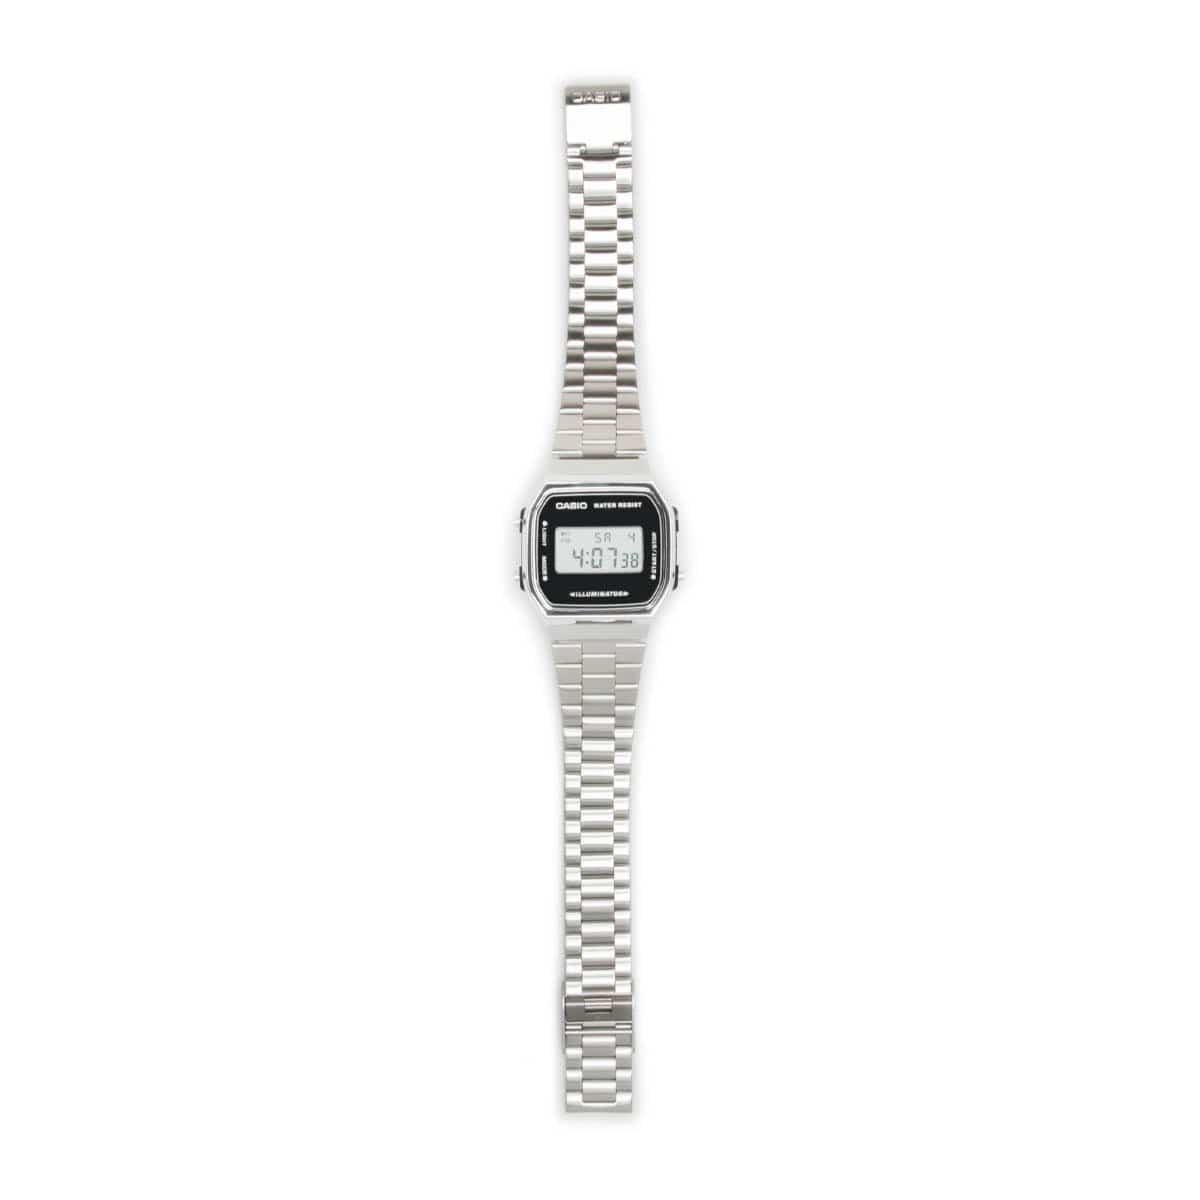 Casio Bags & Accessories SILVER / O/S A168WEM-7